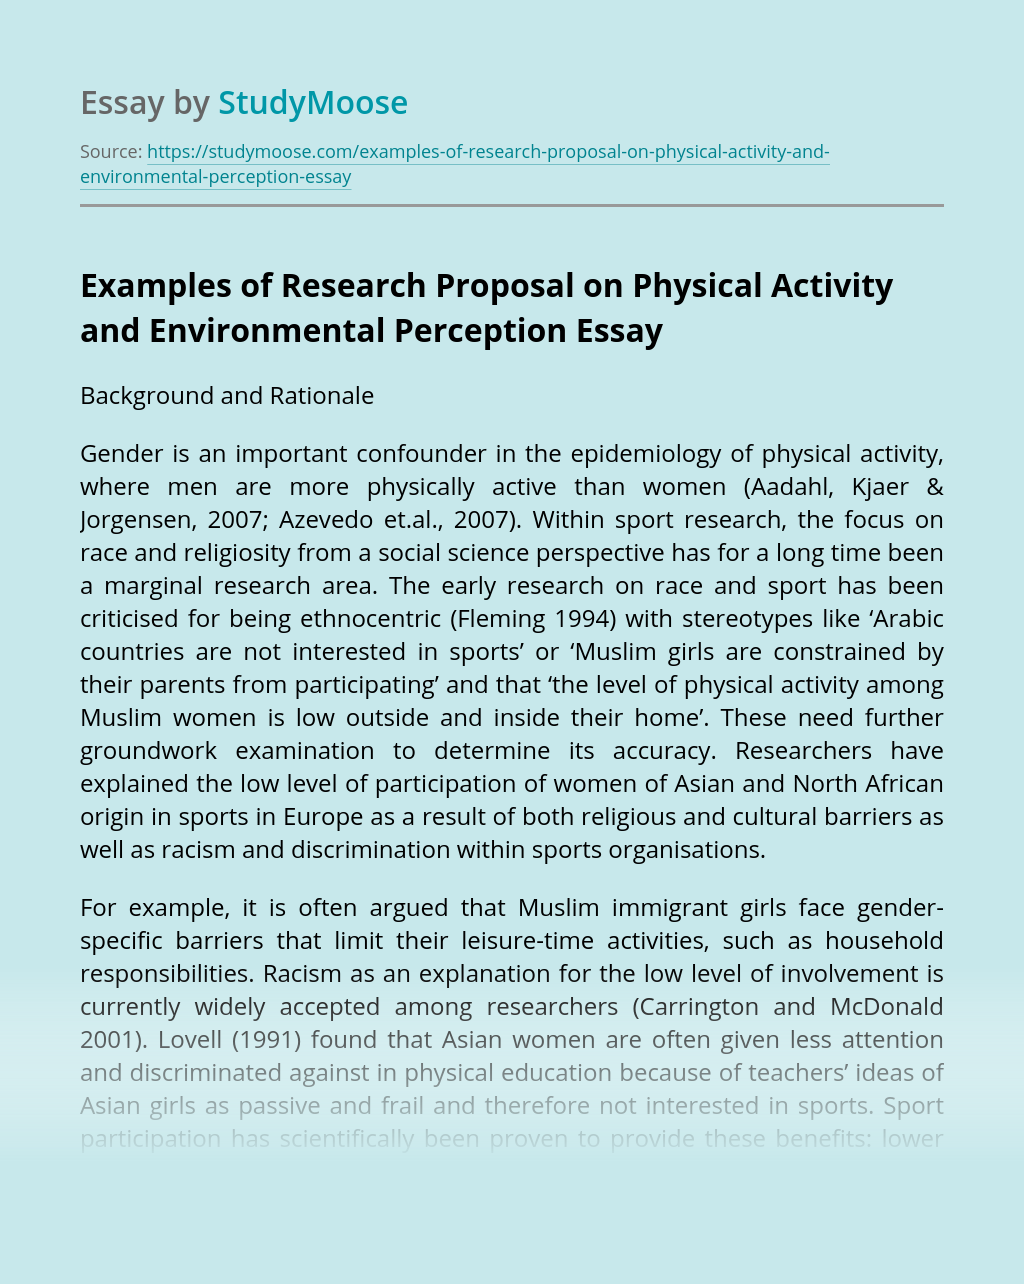 Examples of Research Proposal on Physical Activity and Environmental Perception